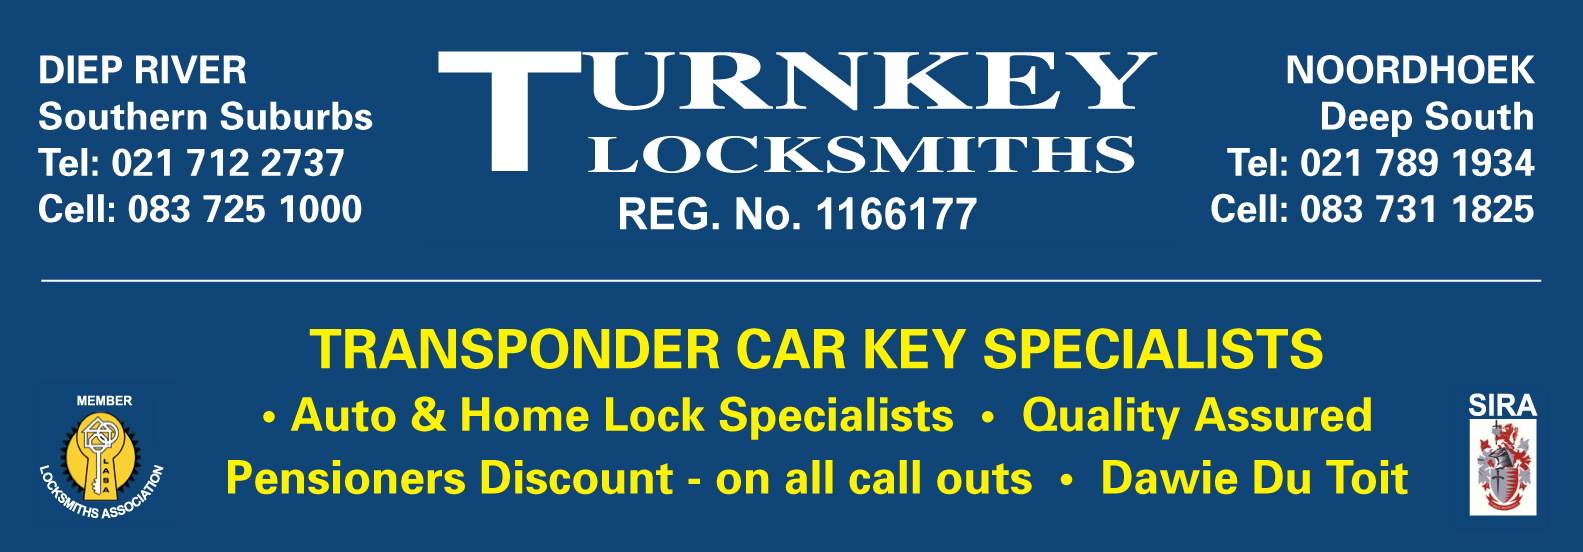 Turnkey Mobile Locksmiths